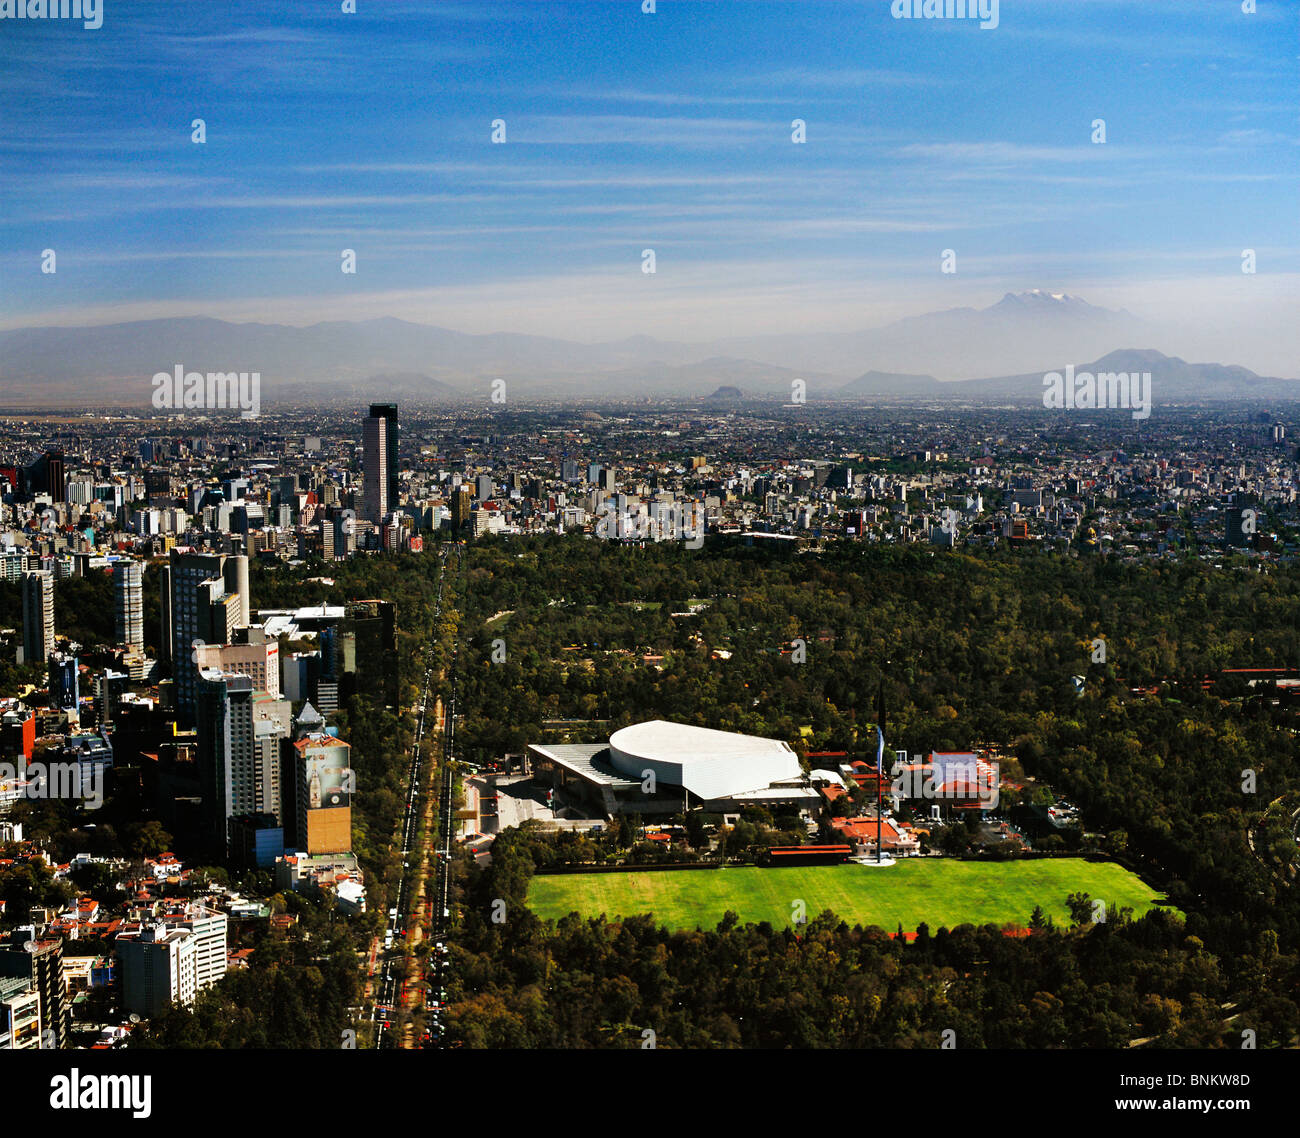 aerial view above National Auditorium Chapultepec Park Mexico City - Stock Image